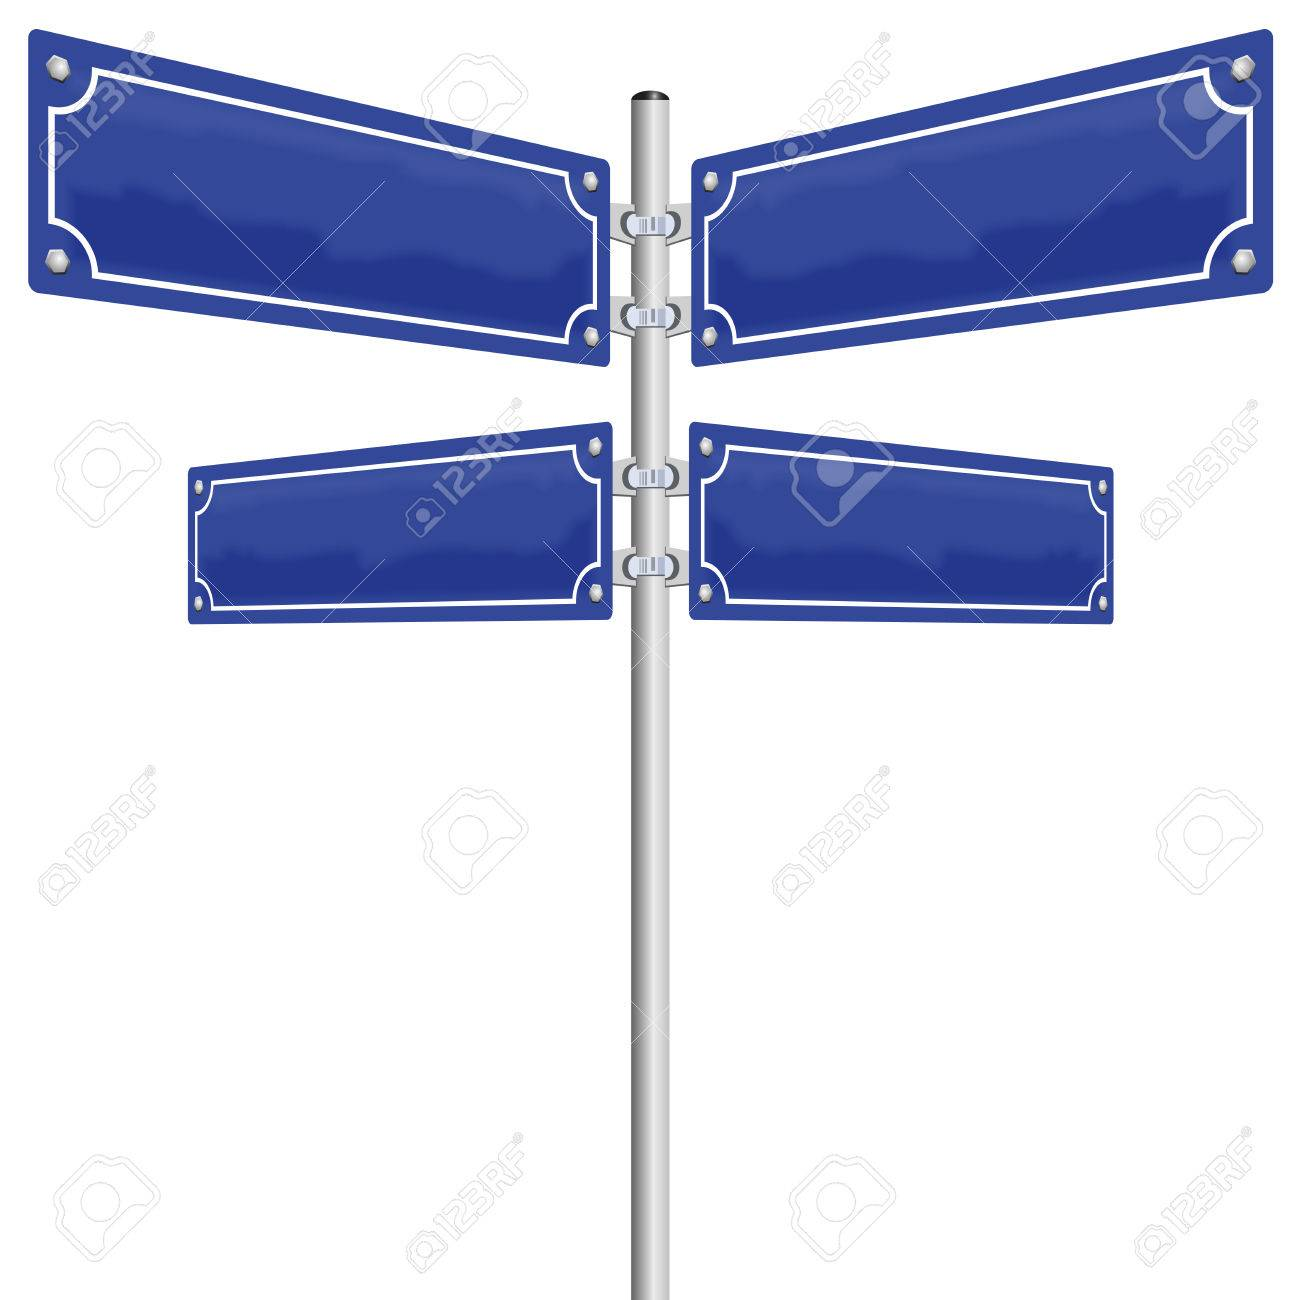 Street signs - four blank, glossy blue metal panels showing in four different directions. Illustration on white background. Standard-Bild - 48052931